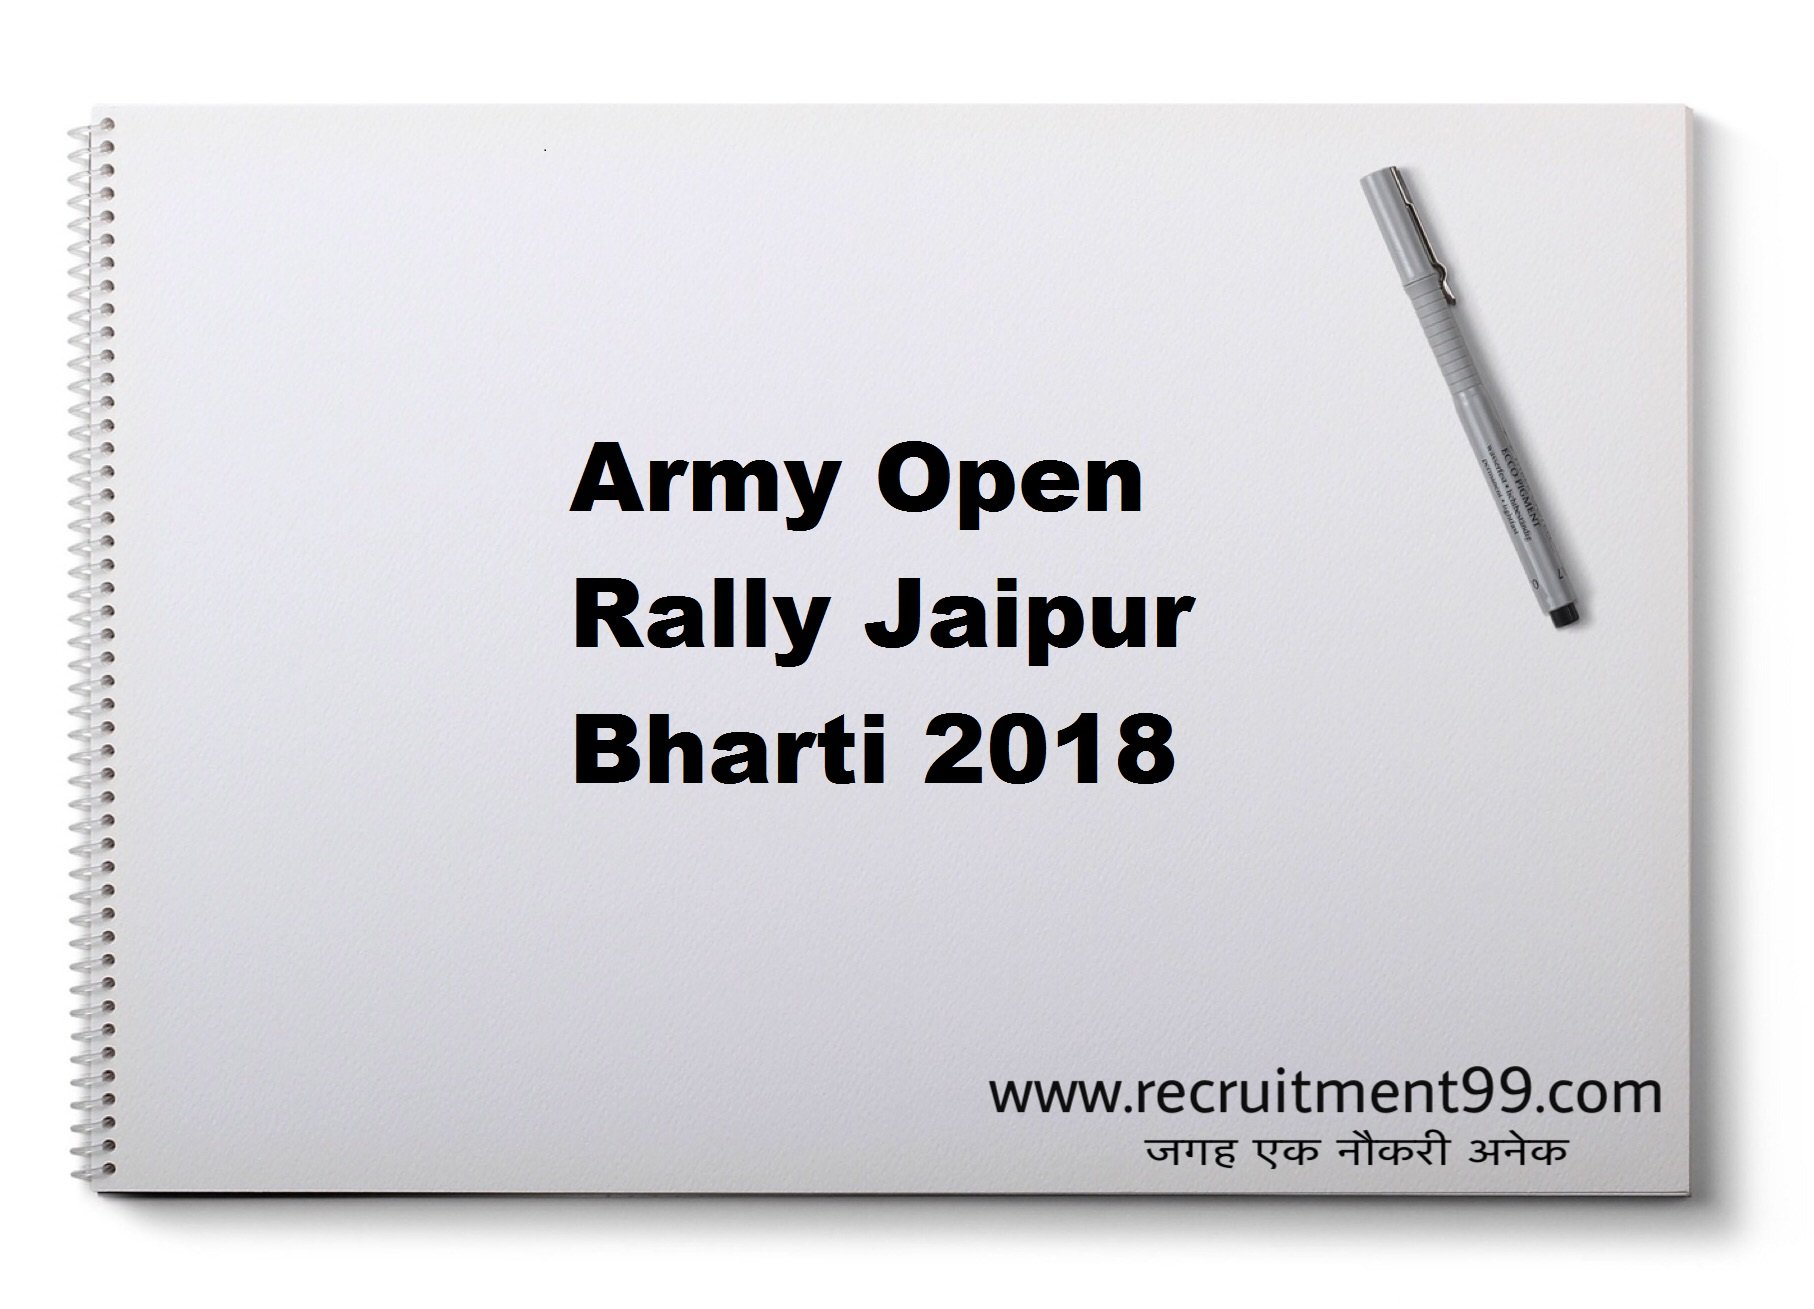 Army Open Rally Jaipur Bharti Admit Card Result 2018